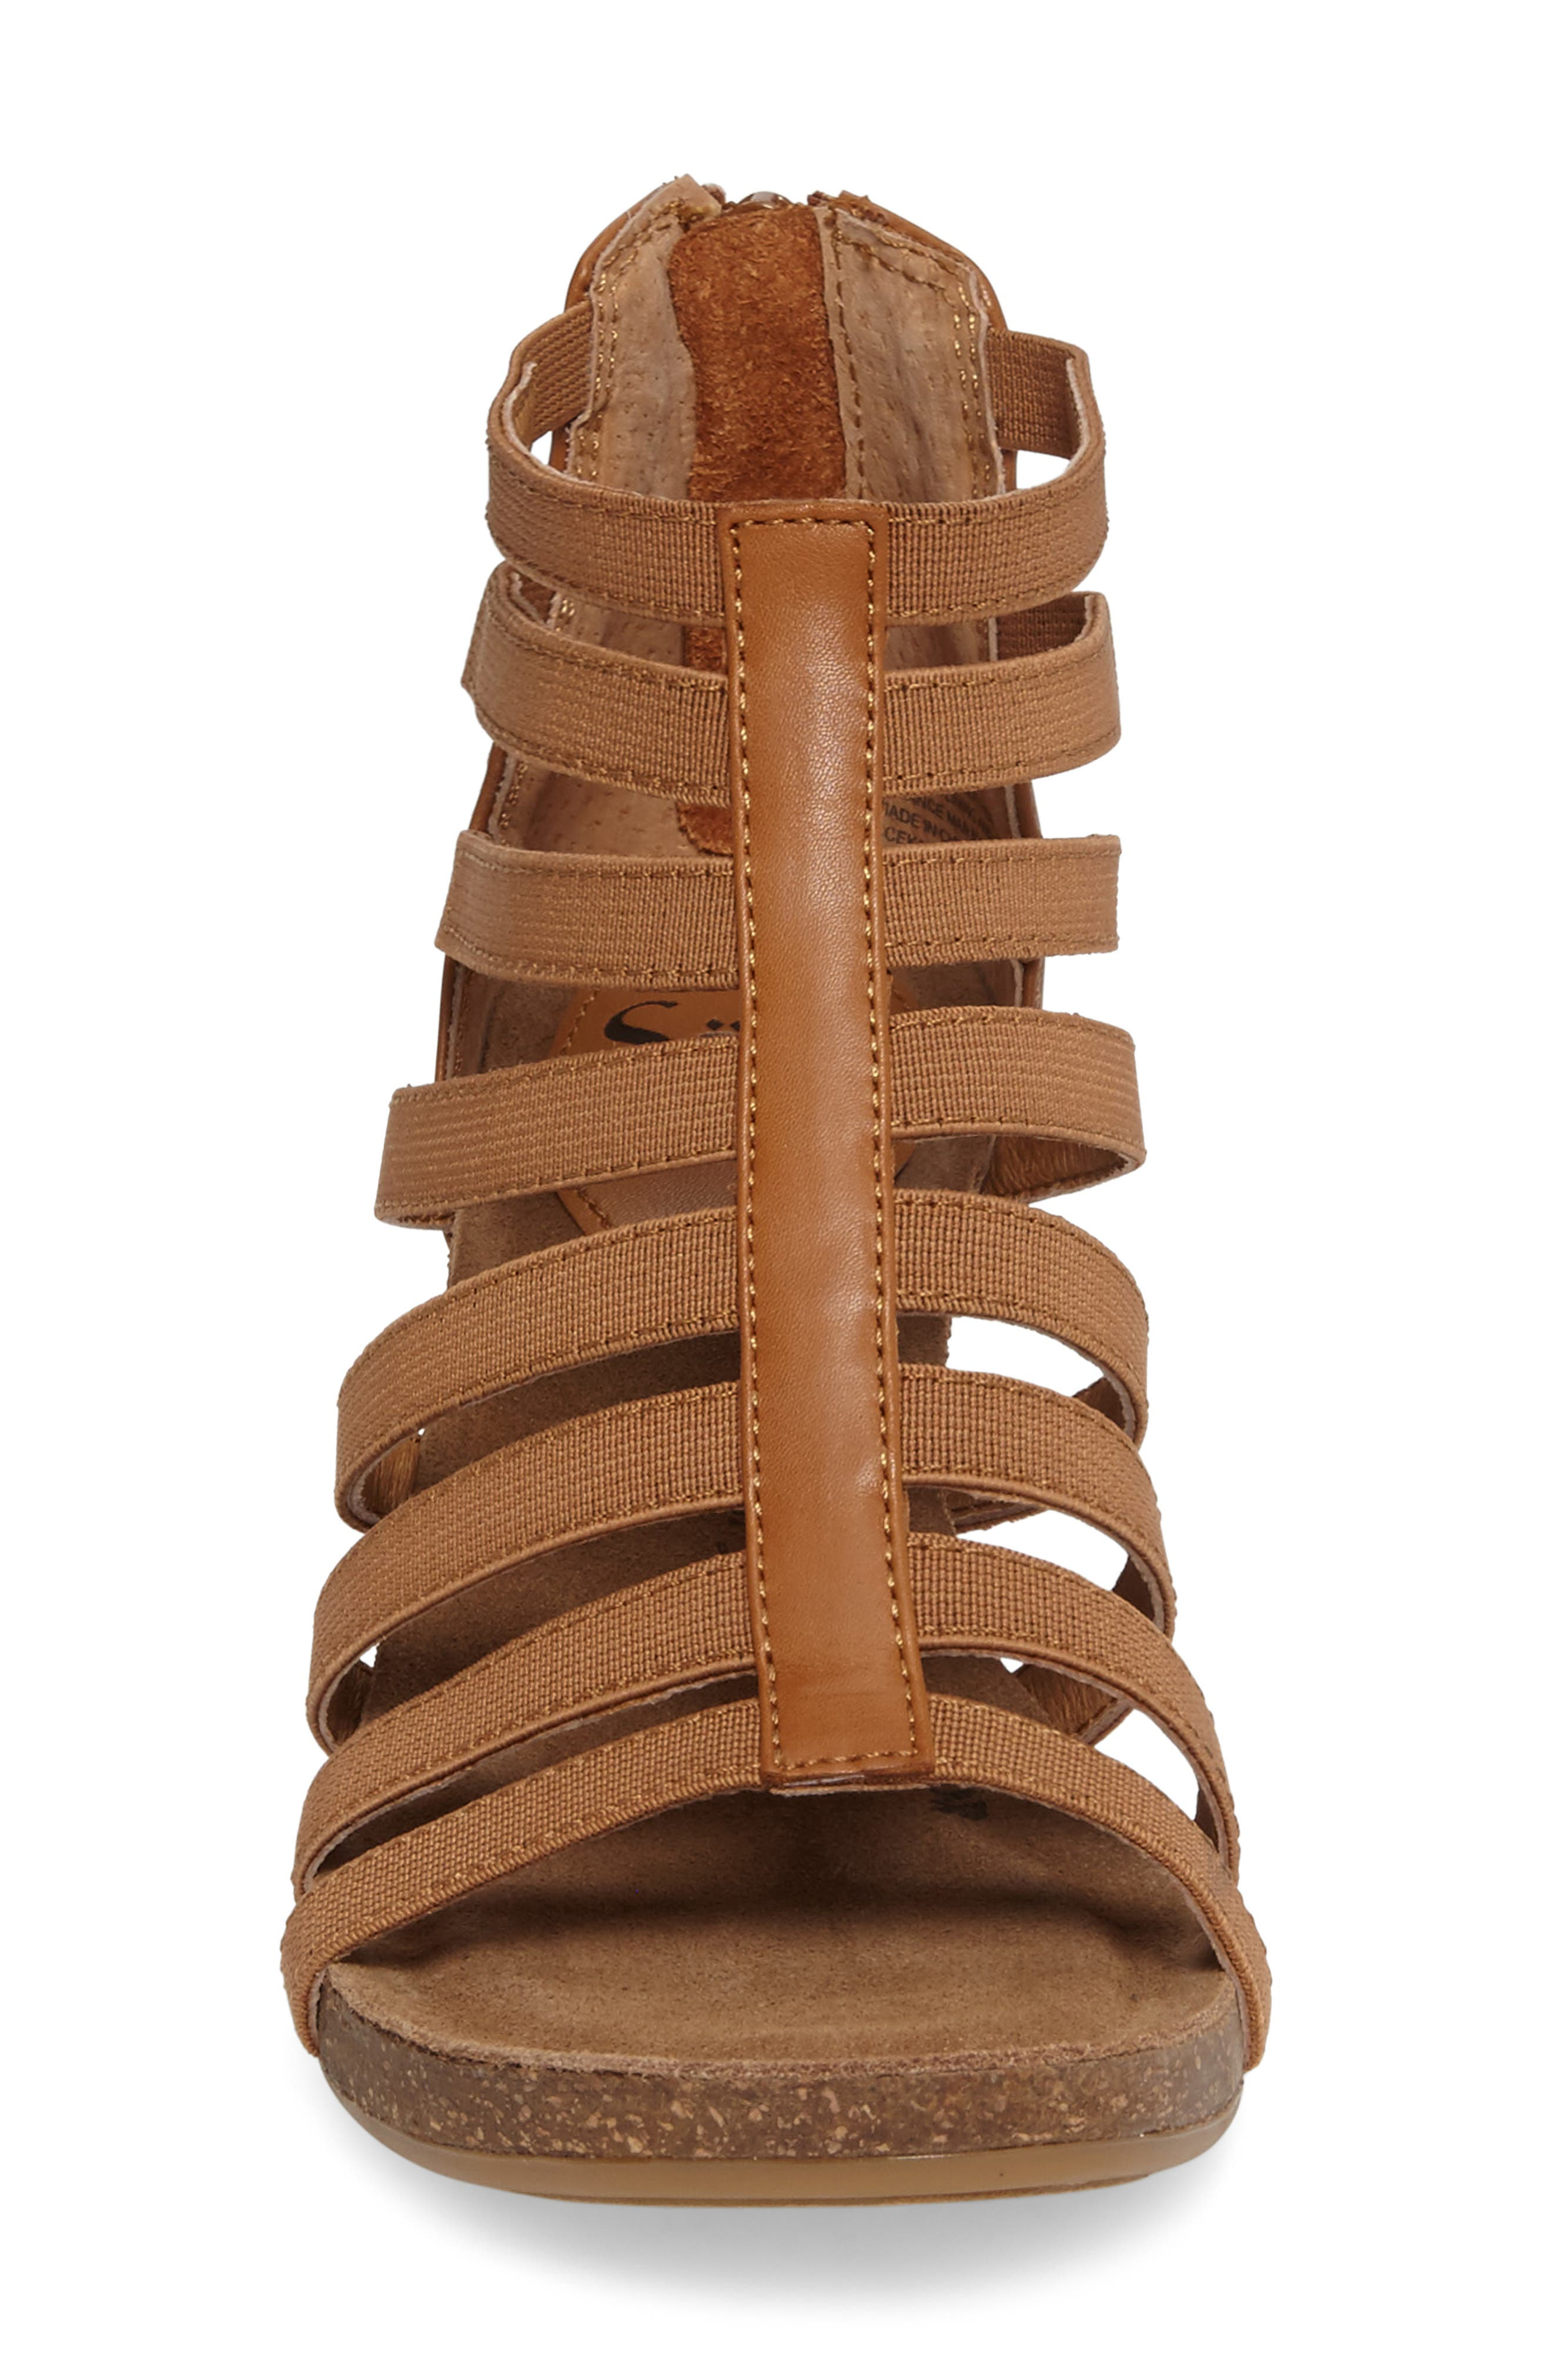 Mati Caged Wedge Sandal,                             Alternate thumbnail 8, color,